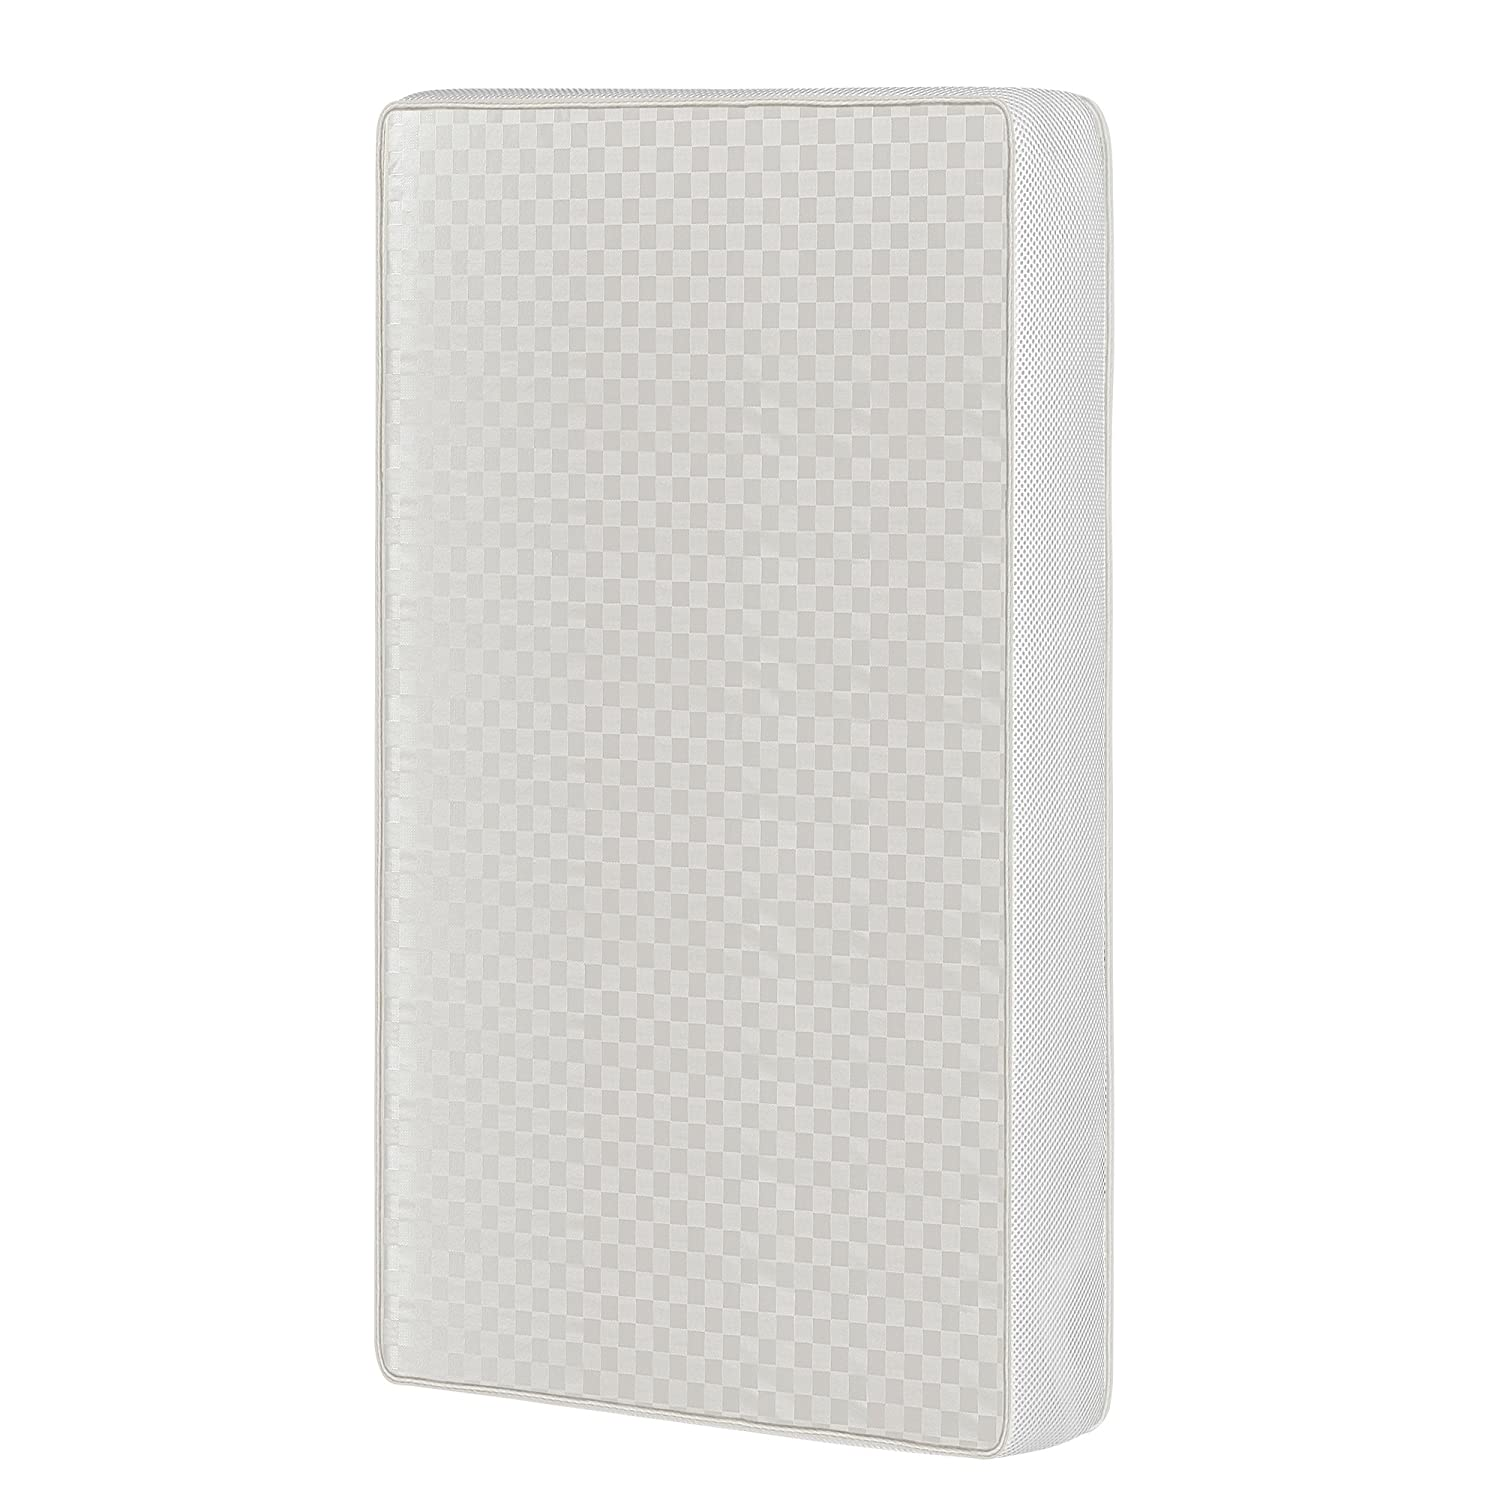 Dream On Me, 2-In-1 Breathable Two-Sided 3Mini/Portable Crib Mattress, White Dream on Me Dropship BR-24